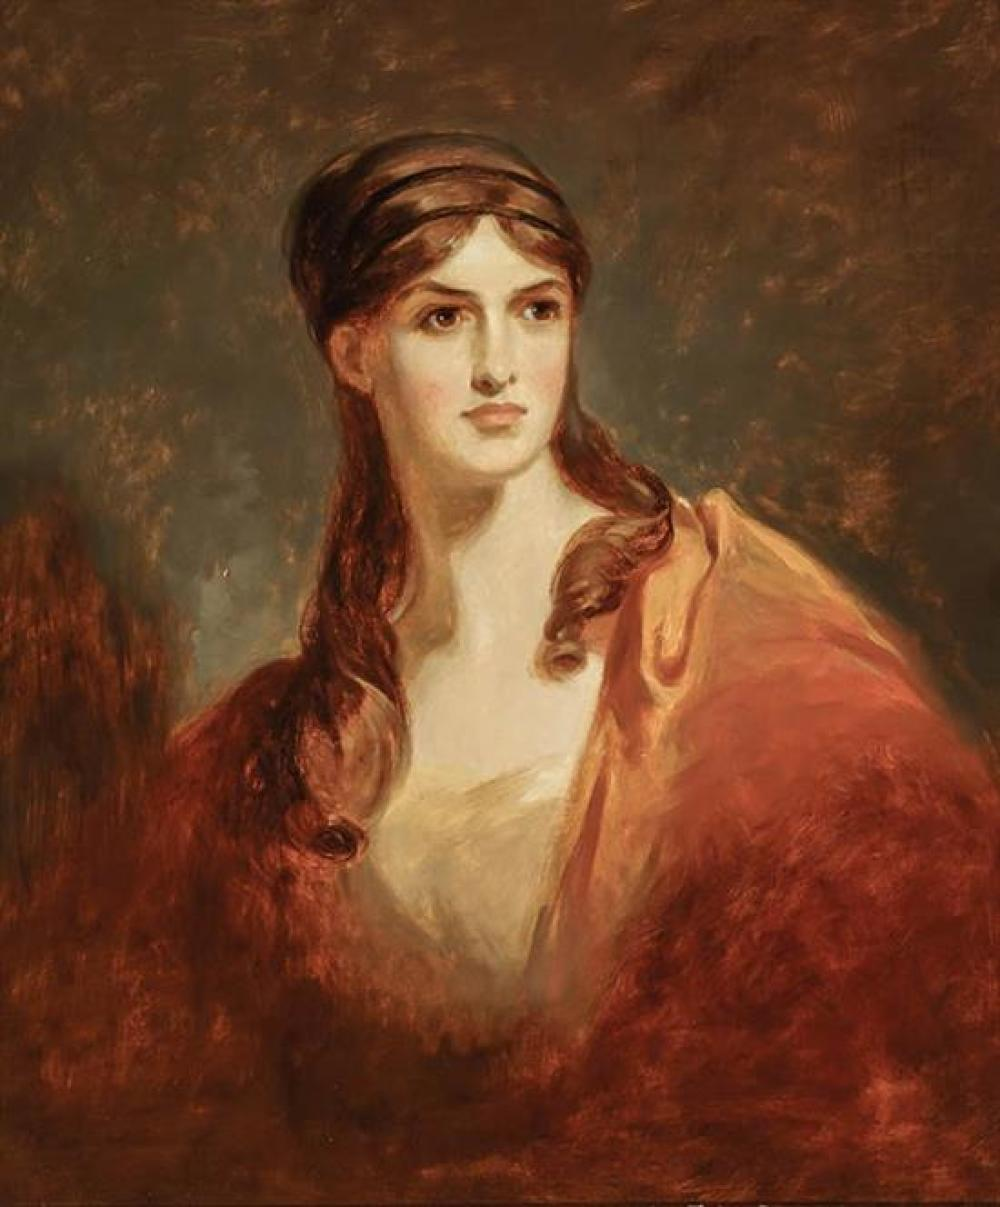 Thomas Sully (American 1783-1872), Fanny Kemble as 'Bianca', Oil on Canvas, 30 x 25-1/4 inches